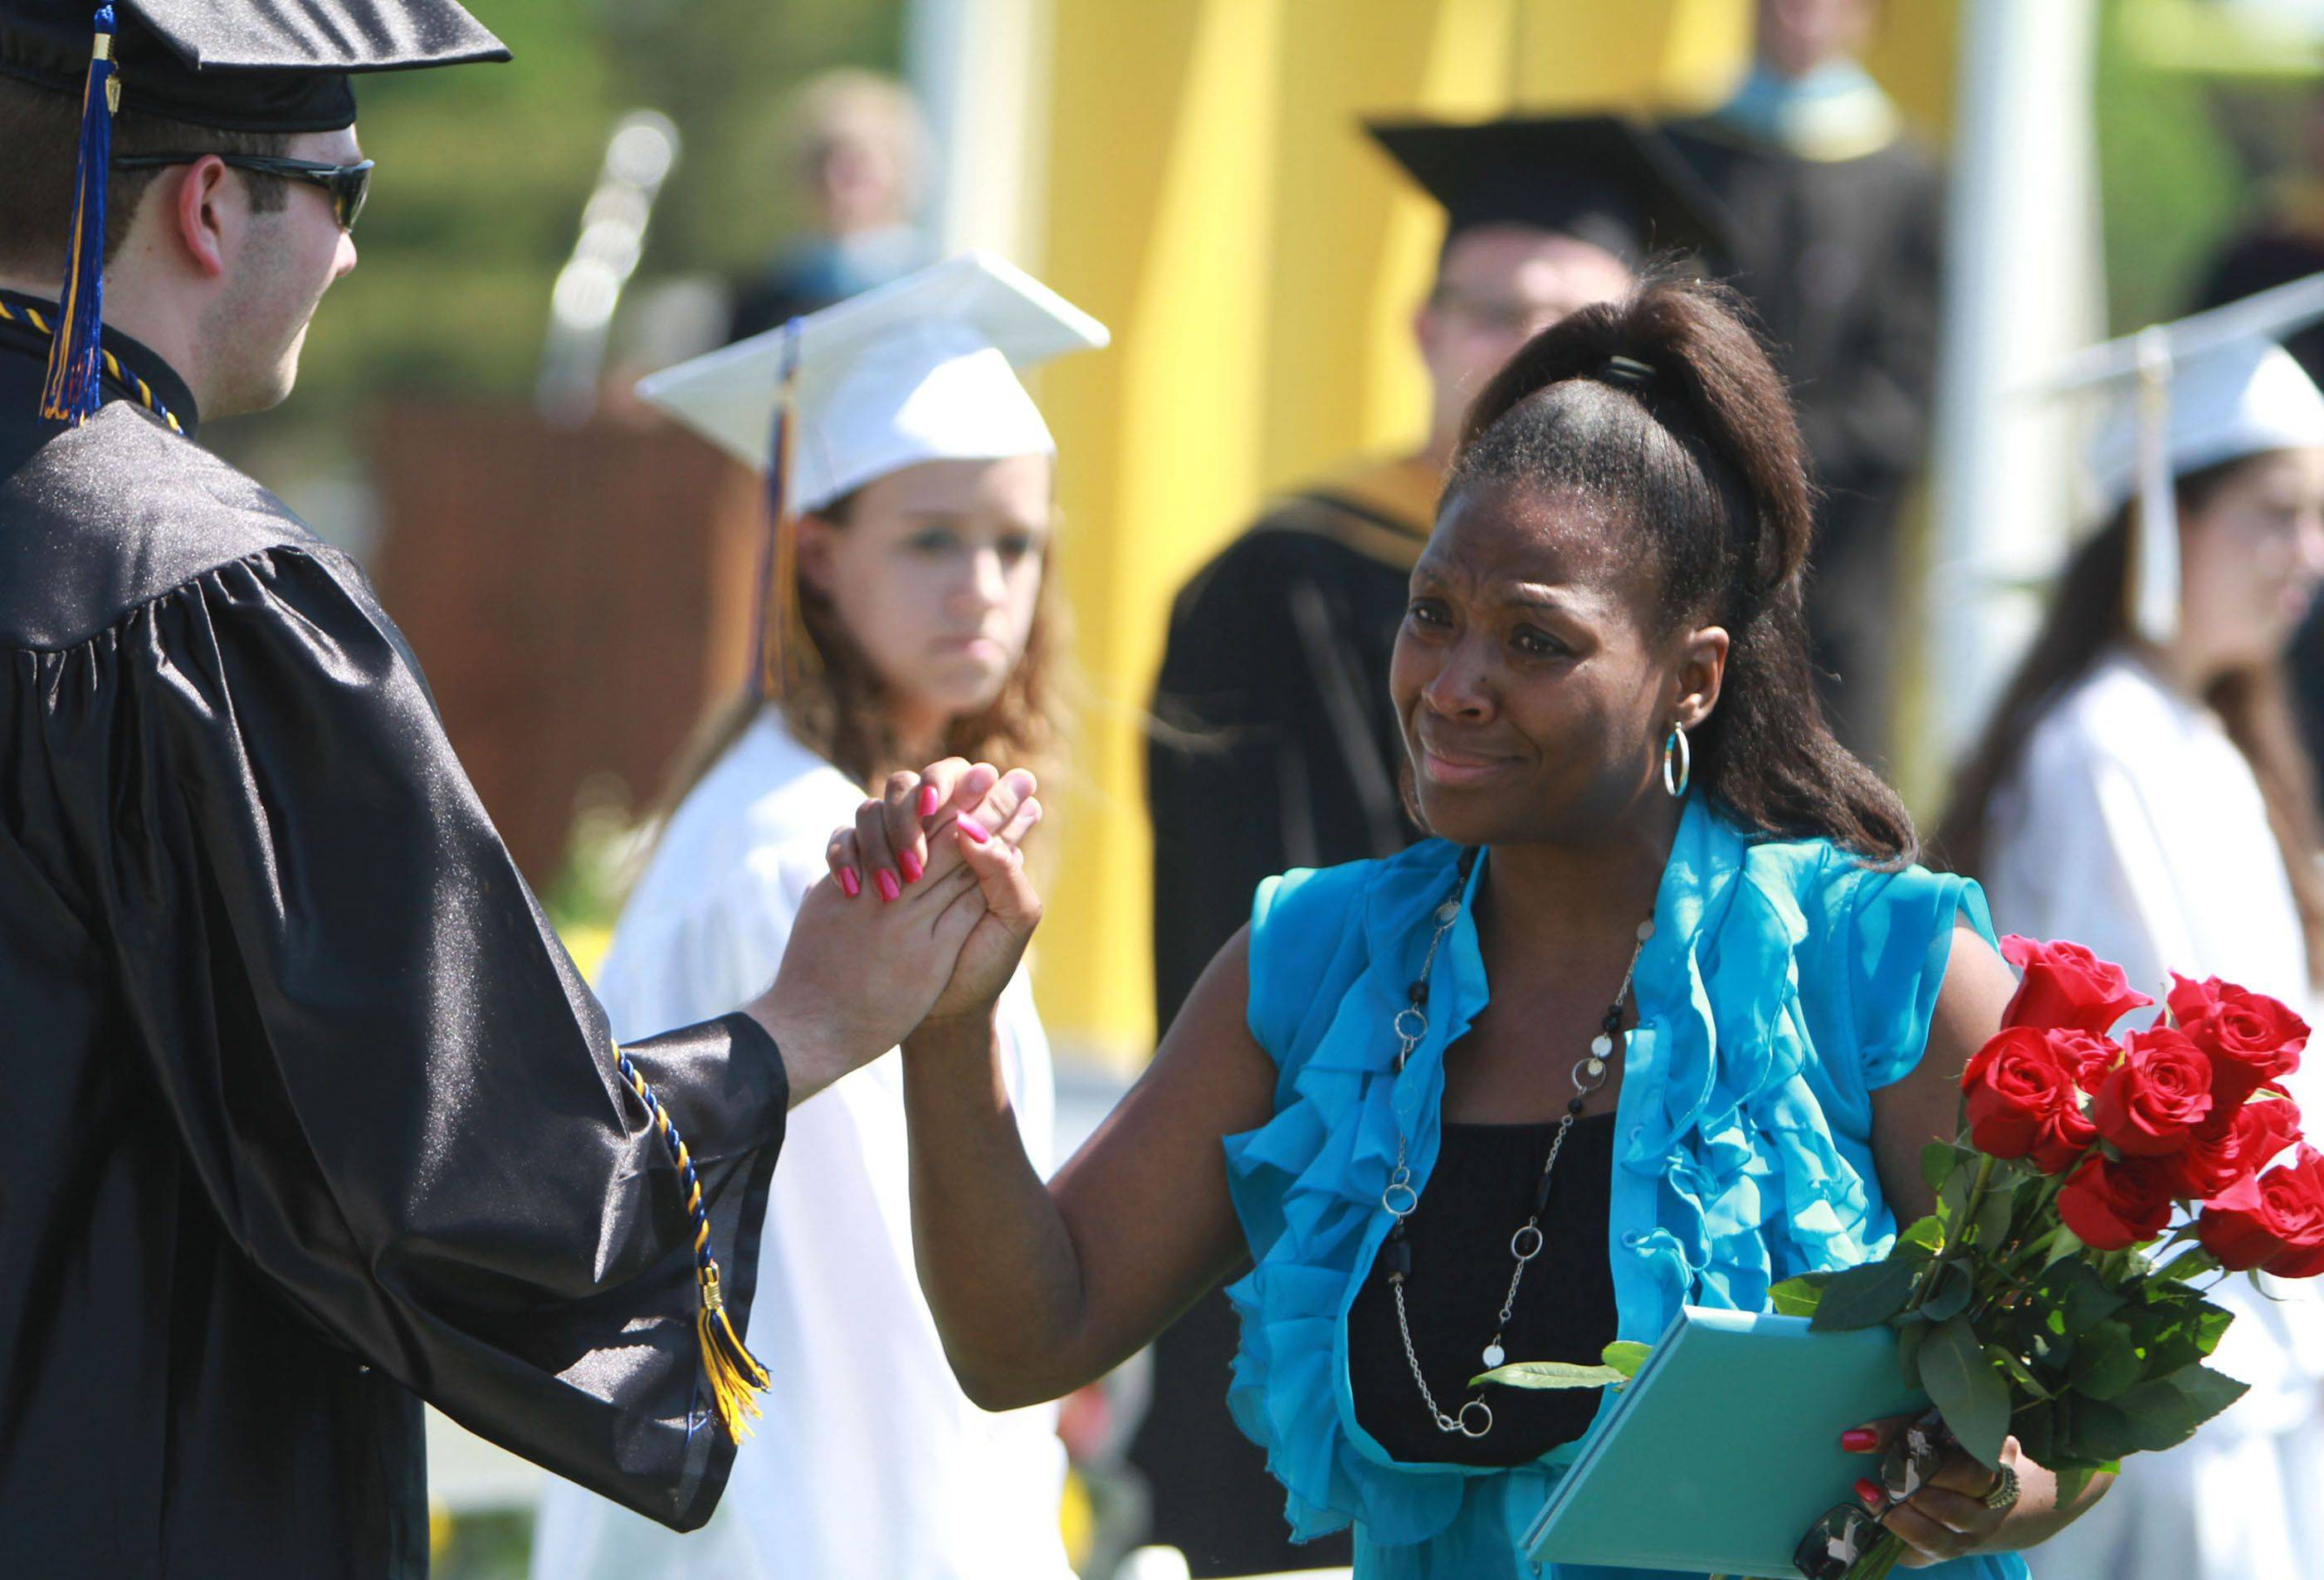 Loreene Taylor gets handshakes, hugs and roses from fellow Maine West High School graduates Sunday as she accepts the diploma for her son, Choice. The 17-year-old was struck and killed by a truck while walking home from work in November.